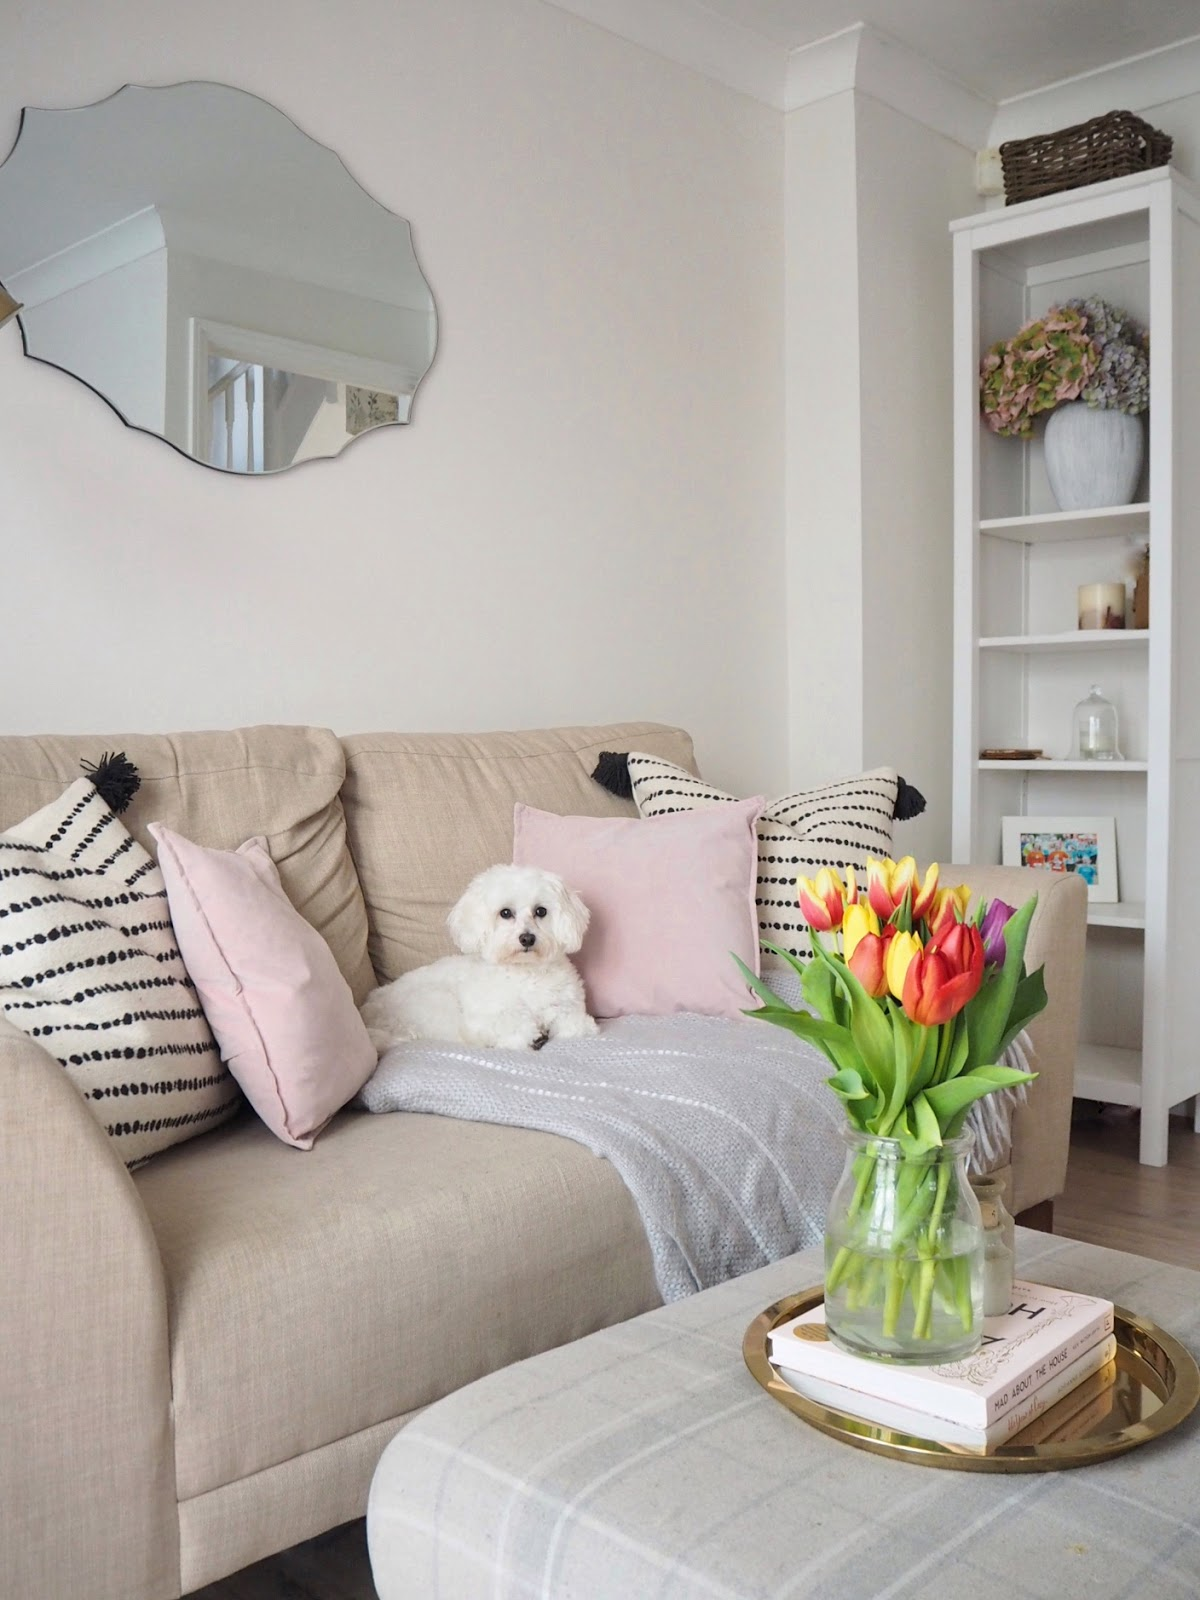 Tips on how to maximise space and solve storage issues in small homes, houses, living spaces, flats and apartments. Storage solutions in small homes.